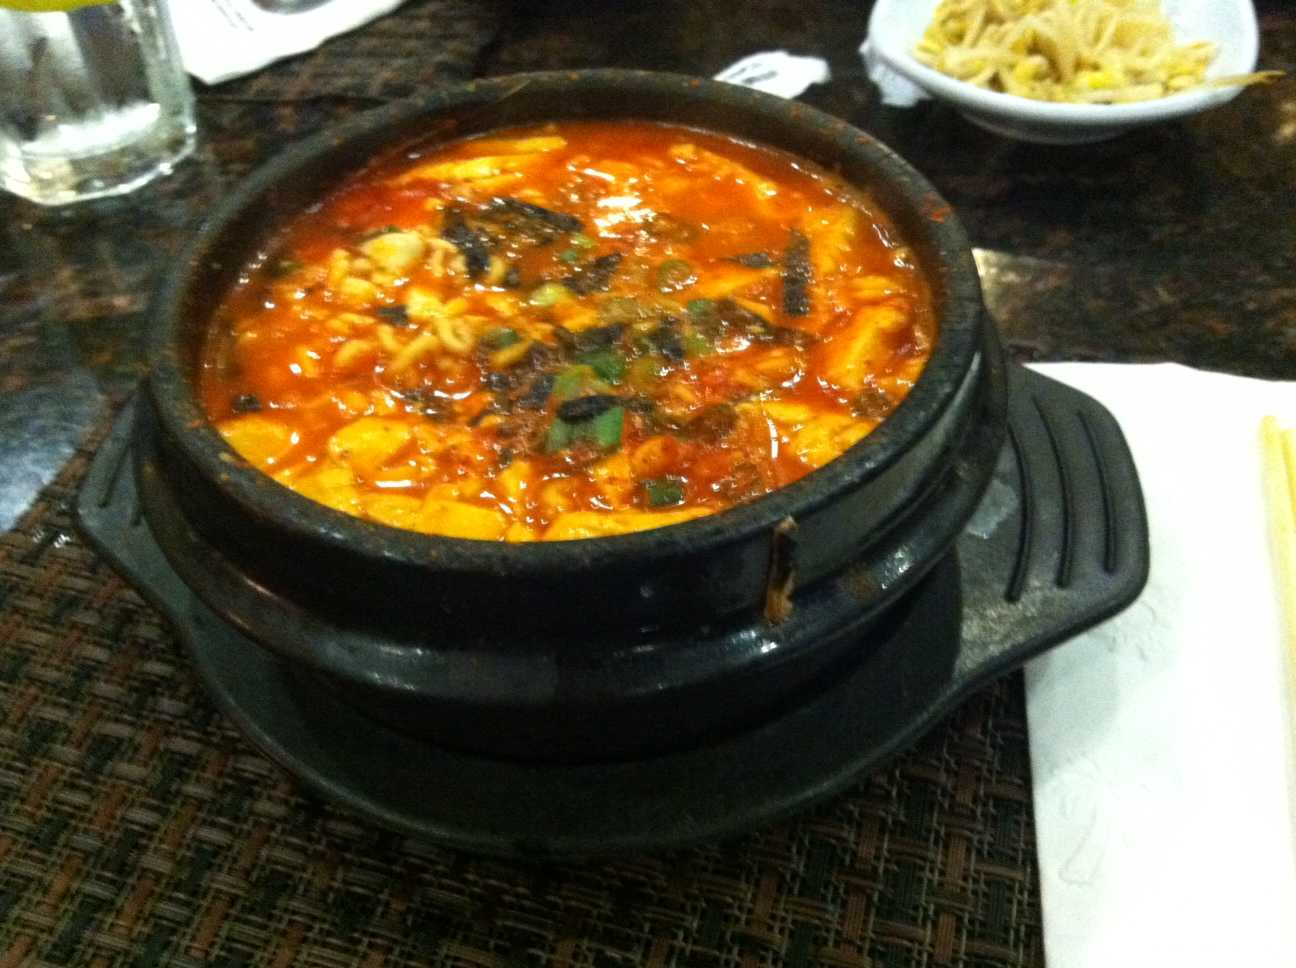 Spicy Version of Tofu Soup